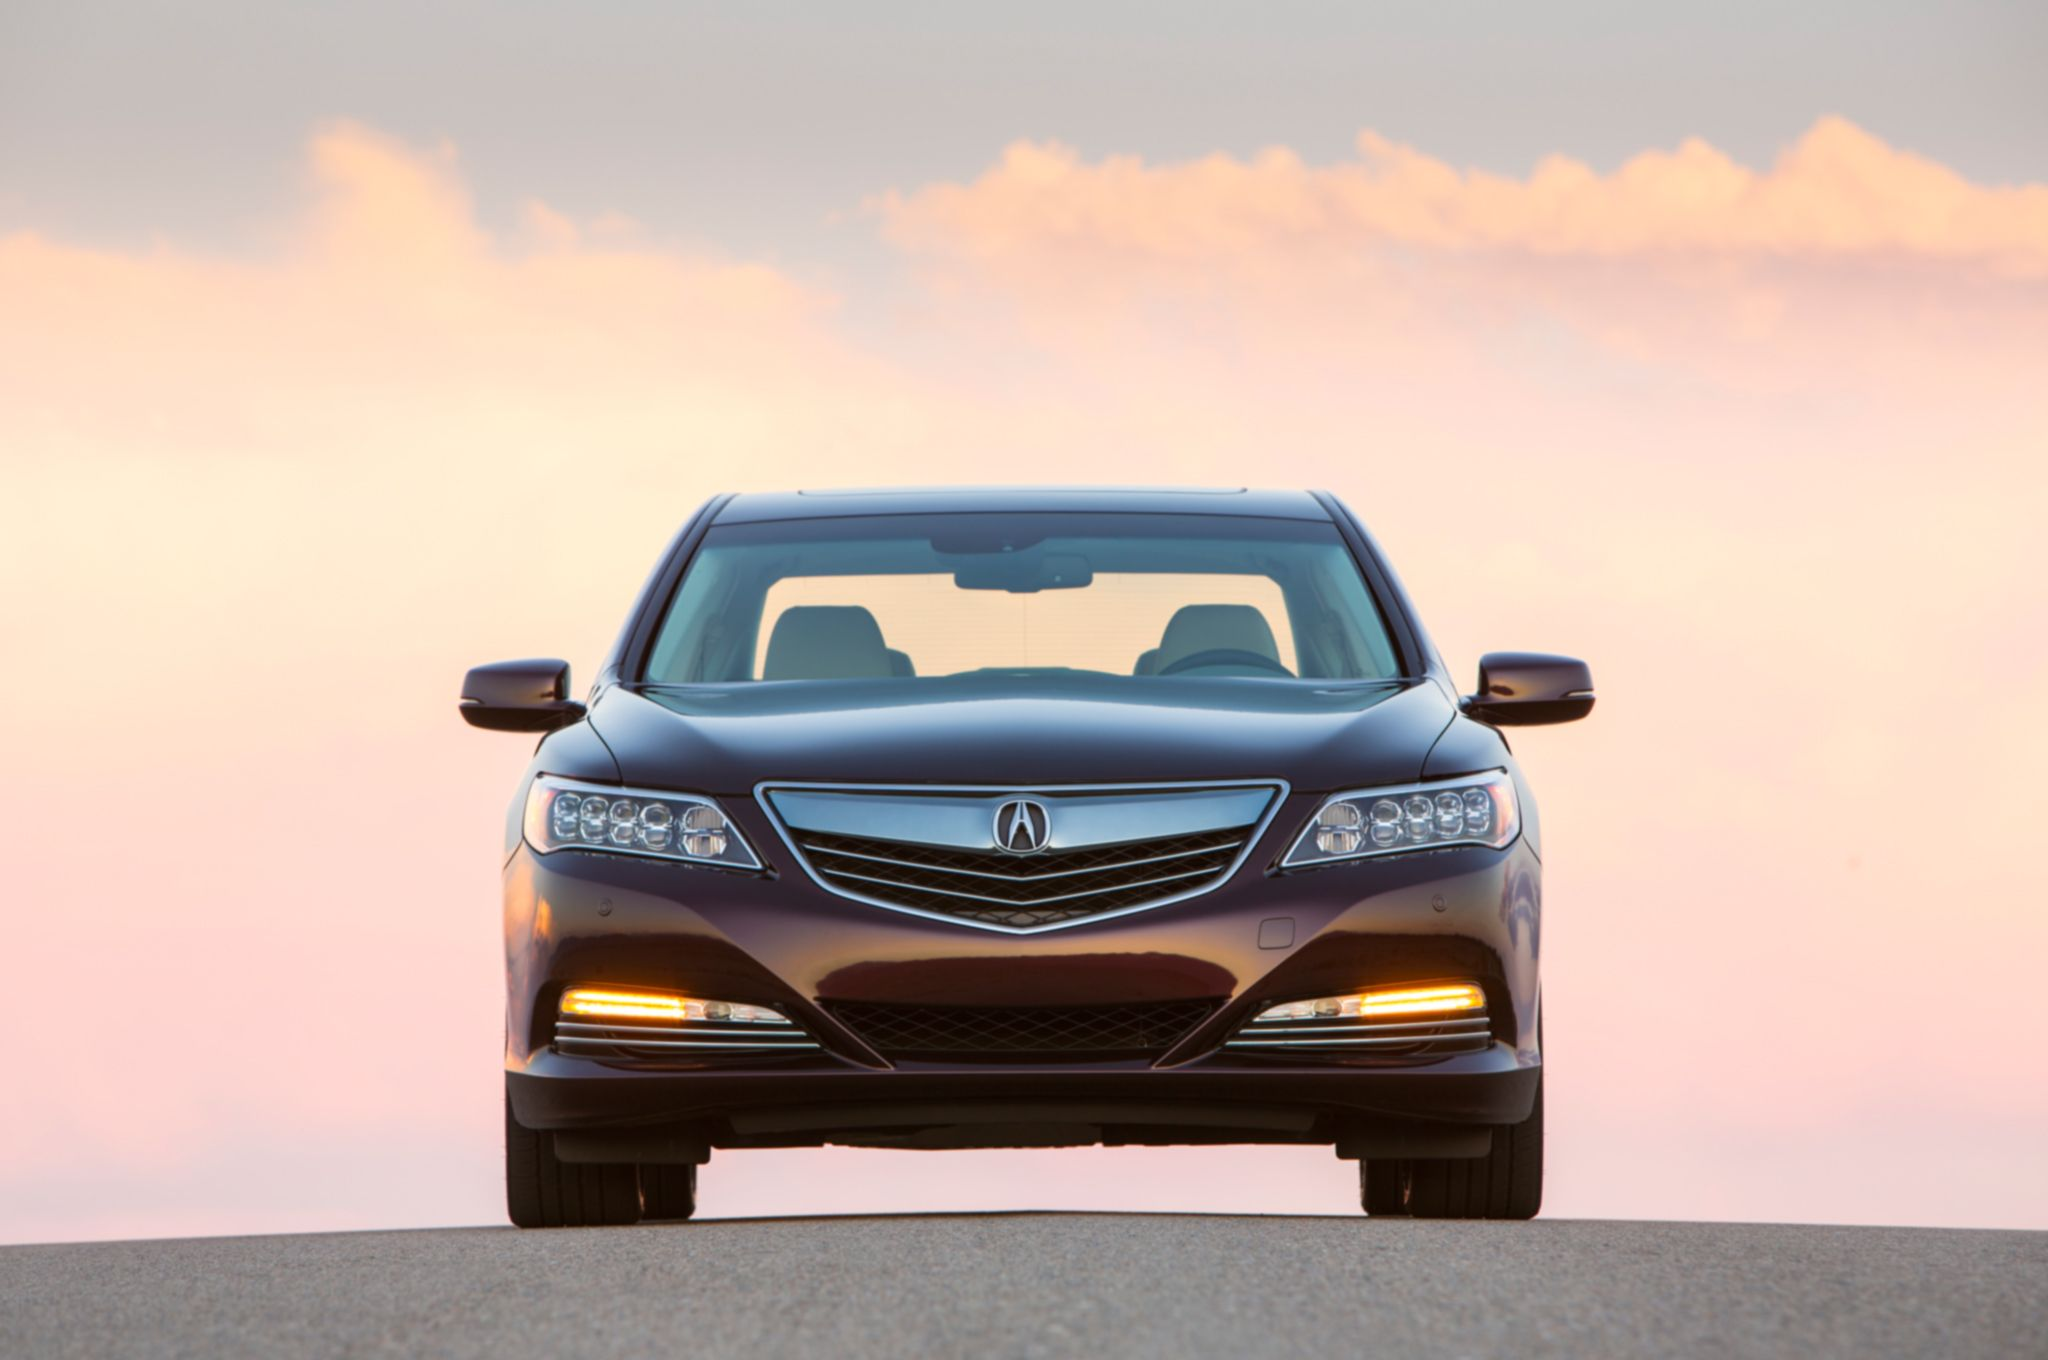 2015 Acura RLX Sport Hybrid Specs release Car wallpapers